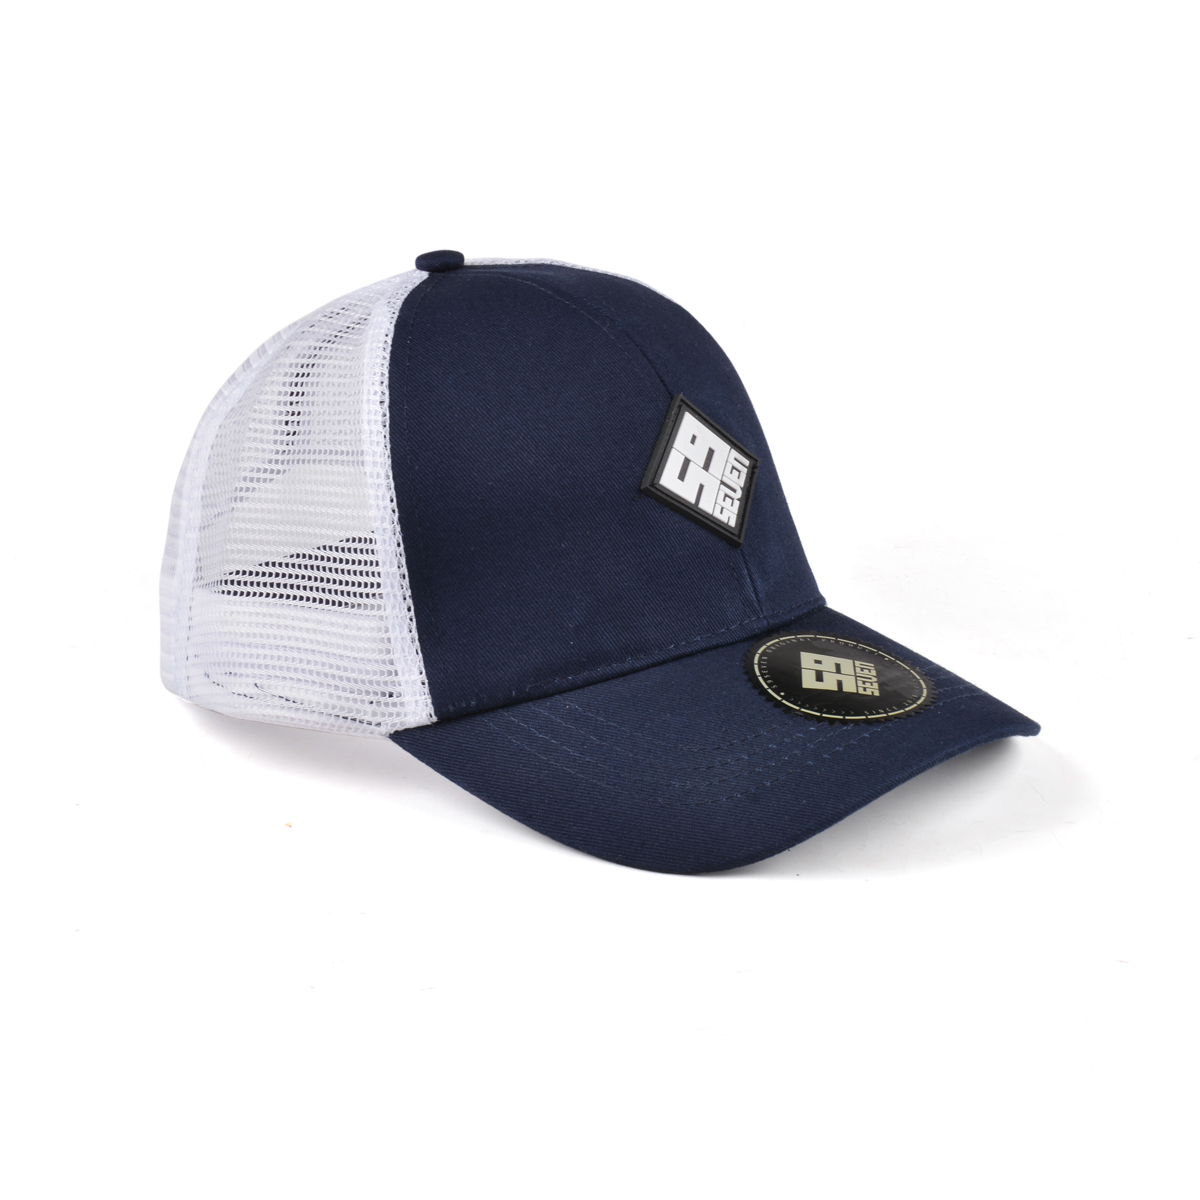 Navy blue with white mesh – 59seven originates from Suriname 5719ea3c364